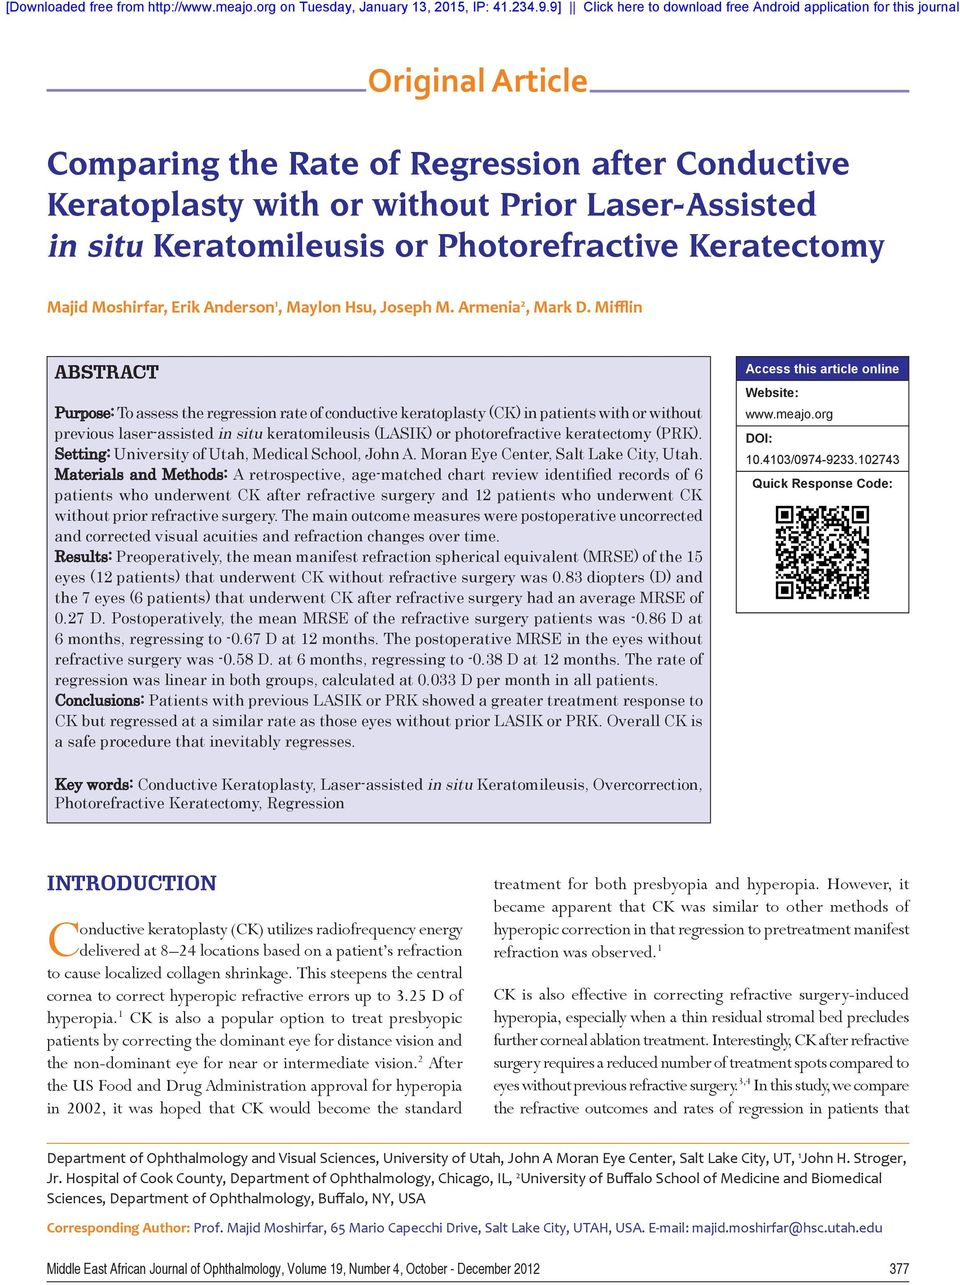 Mifflin ABSTRACT Purpose: To assess the regression rate of conductive keratoplasty (CK) in patients with or without previous laser-assisted in situ keratomileusis (LASIK) or photorefractive